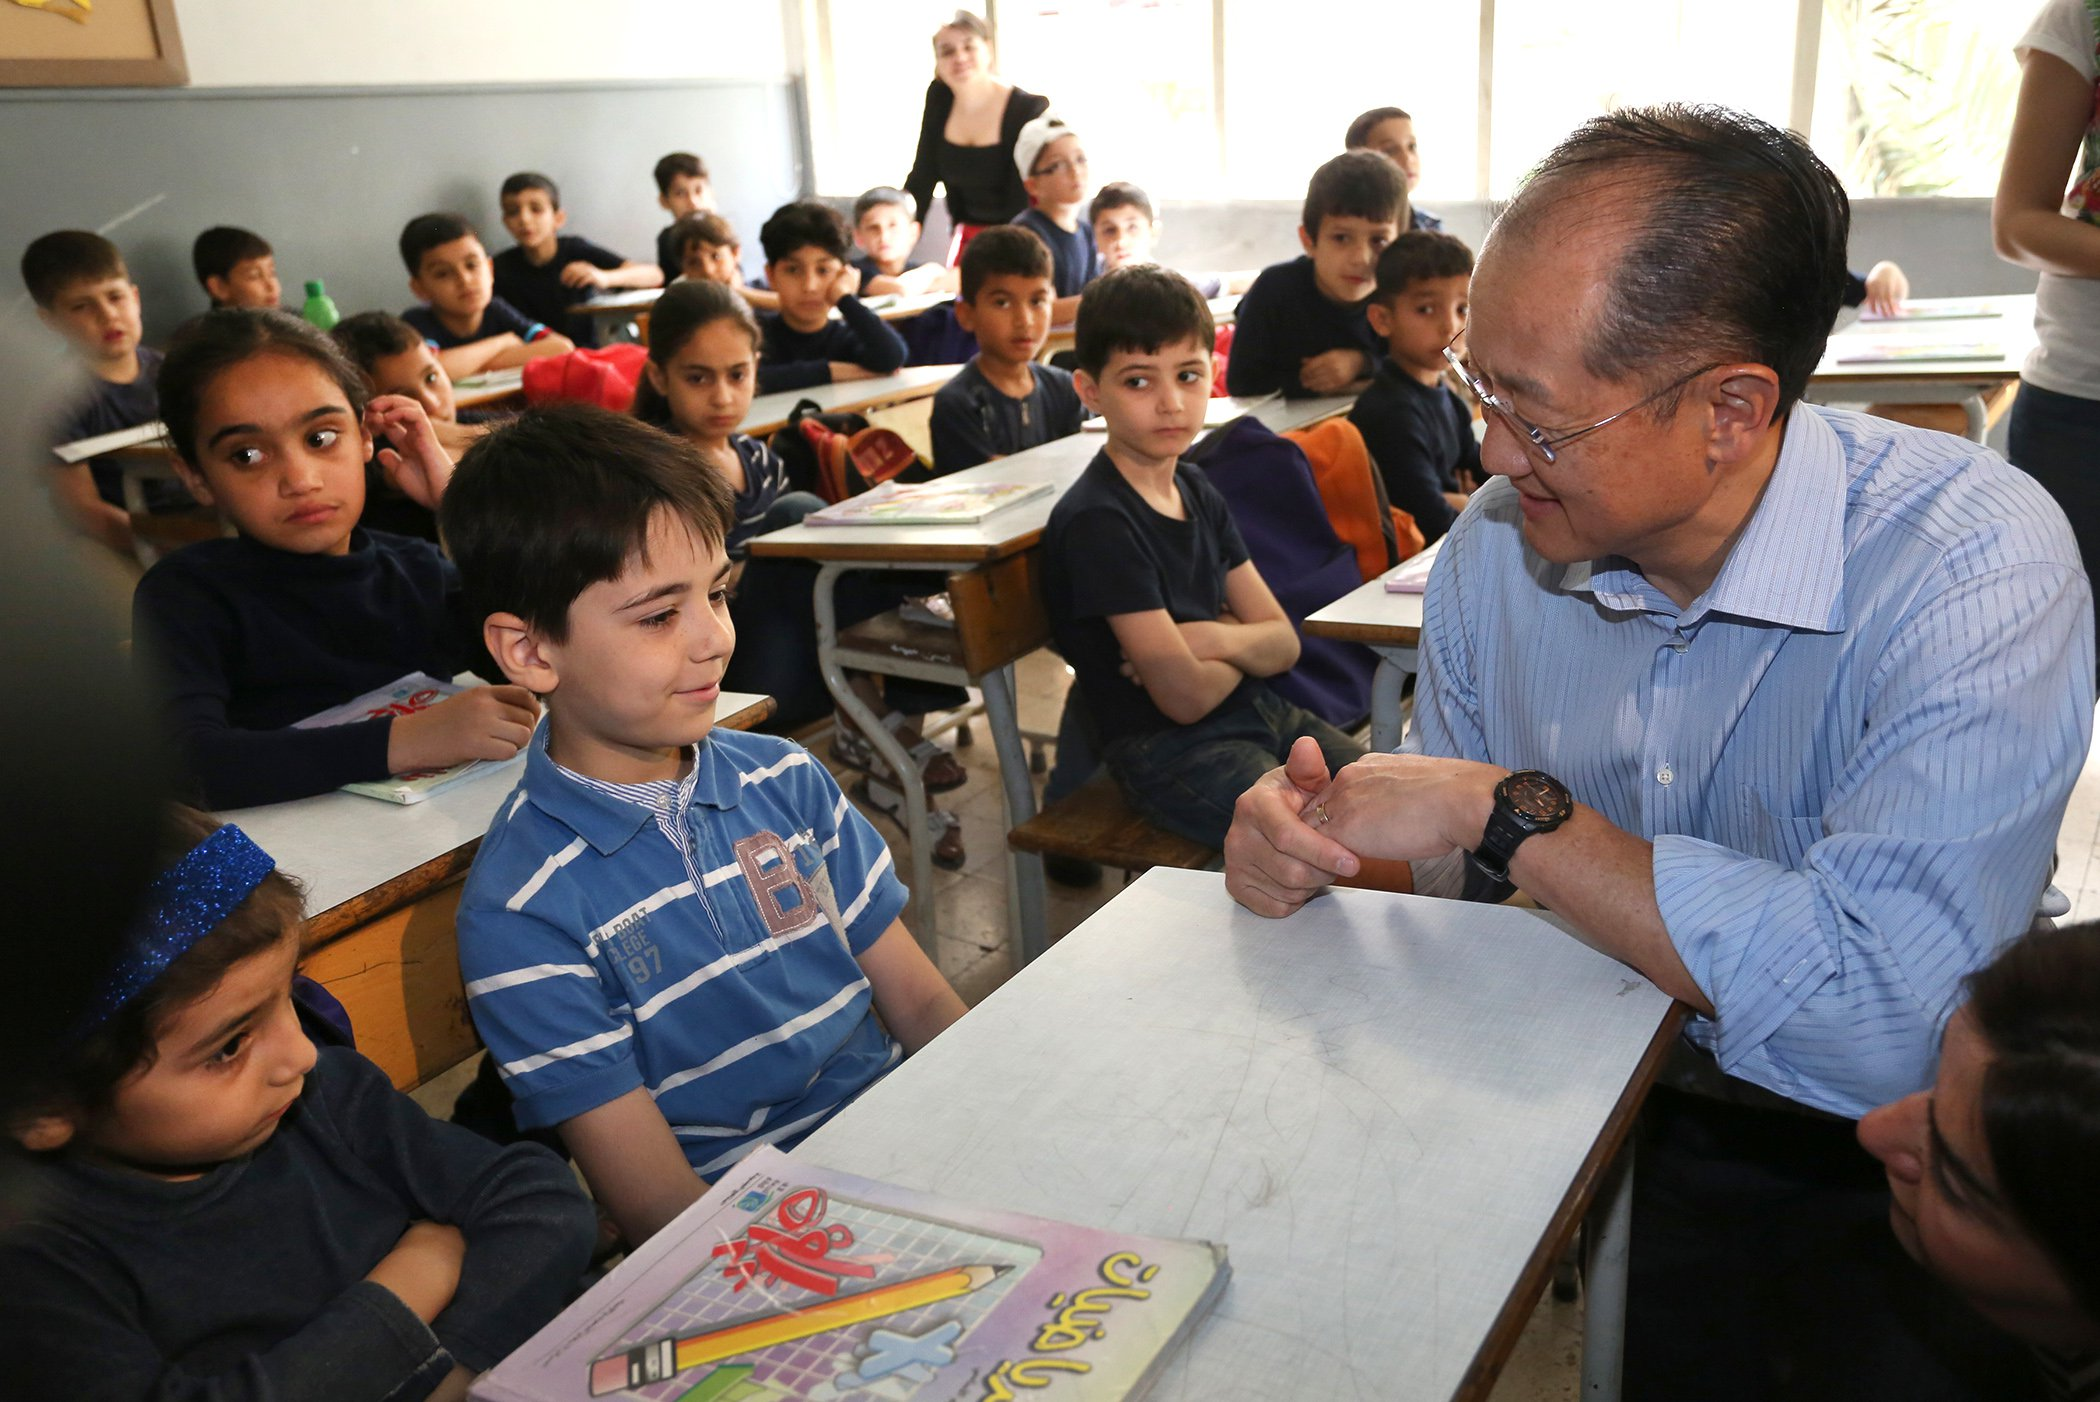 Jim-Kim-World-Bank-Refugees.jpg